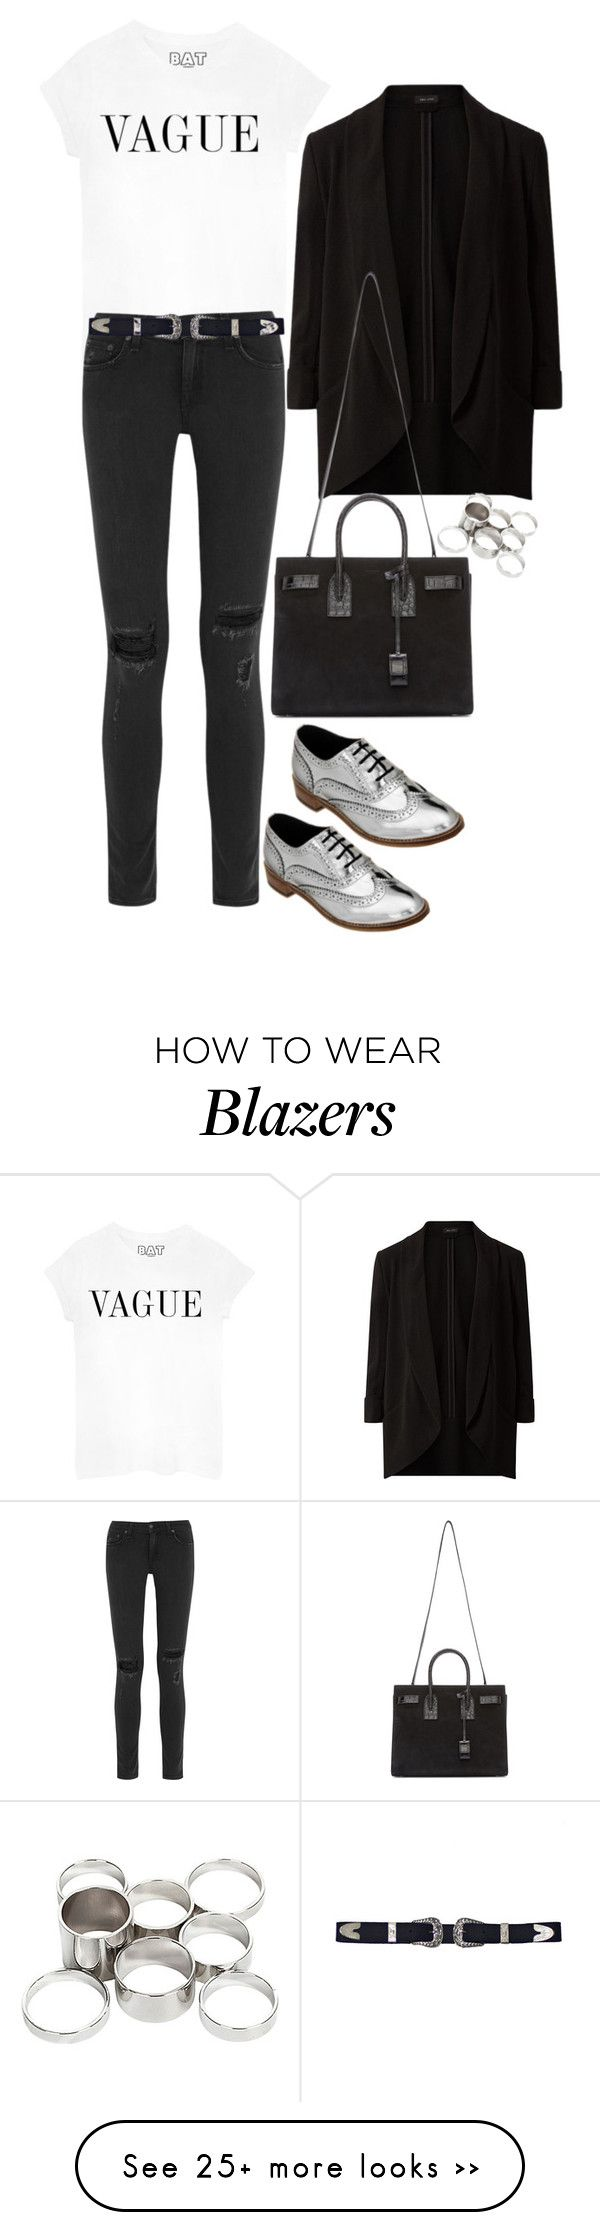 """""""Silver Brogues with Luke Grant Muller"""" by samikayy76 on Polyvore featuring rag & bone, Yves Saint Laurent and Missguided"""